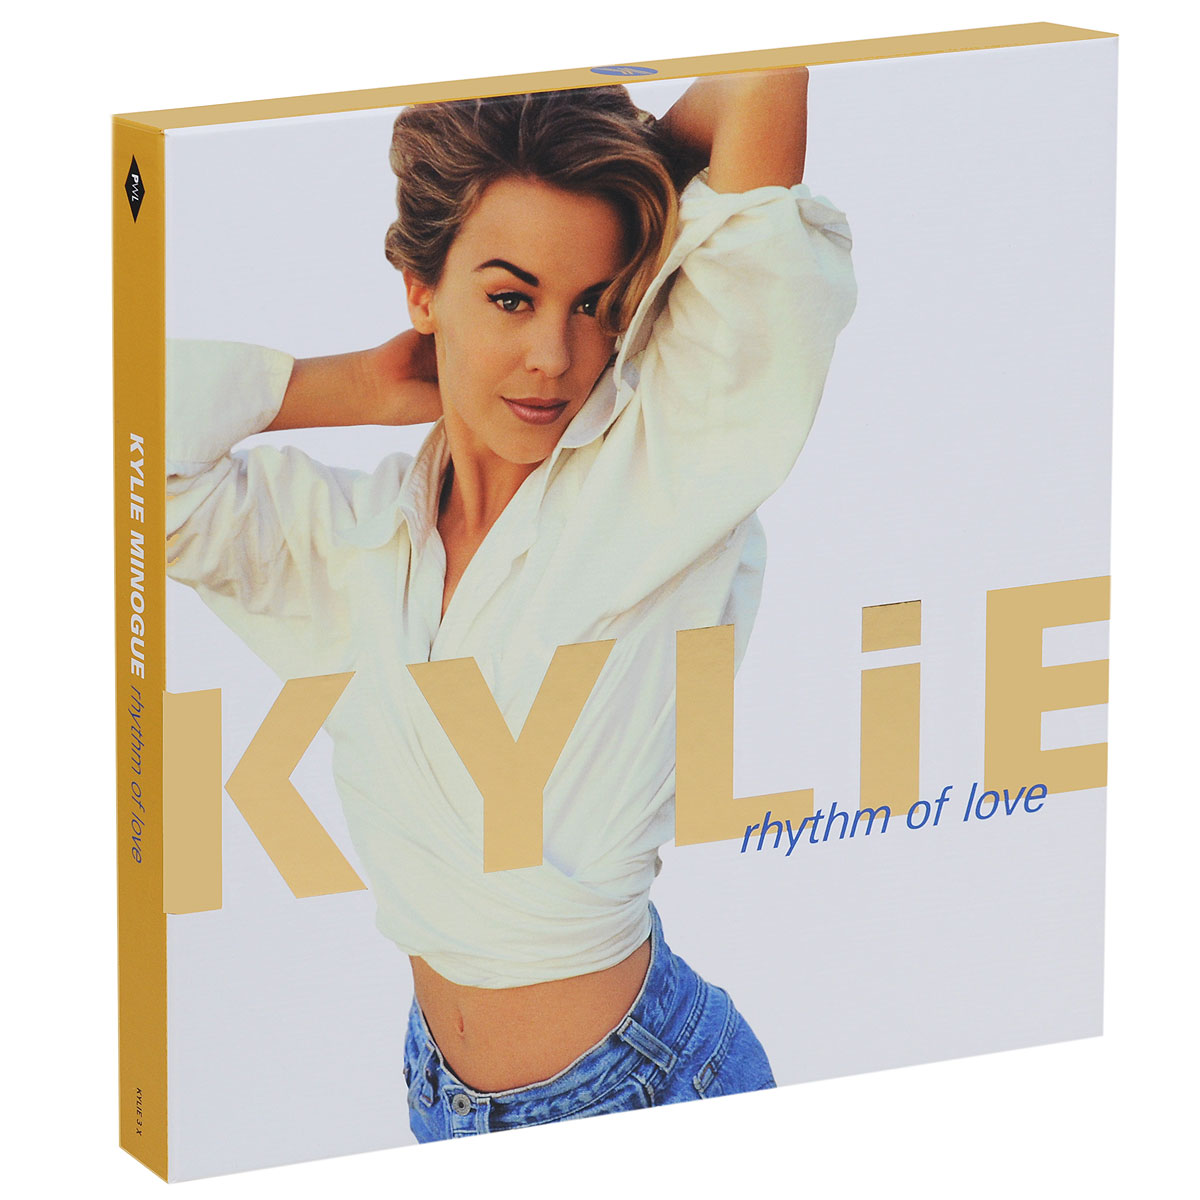 Кайли Миноуг Kylie Minogue. Rhythm Of Love (2 CD + DVD + LP) кайли миноуг kylie minogue enjoy yourself 2 cd dvd lp